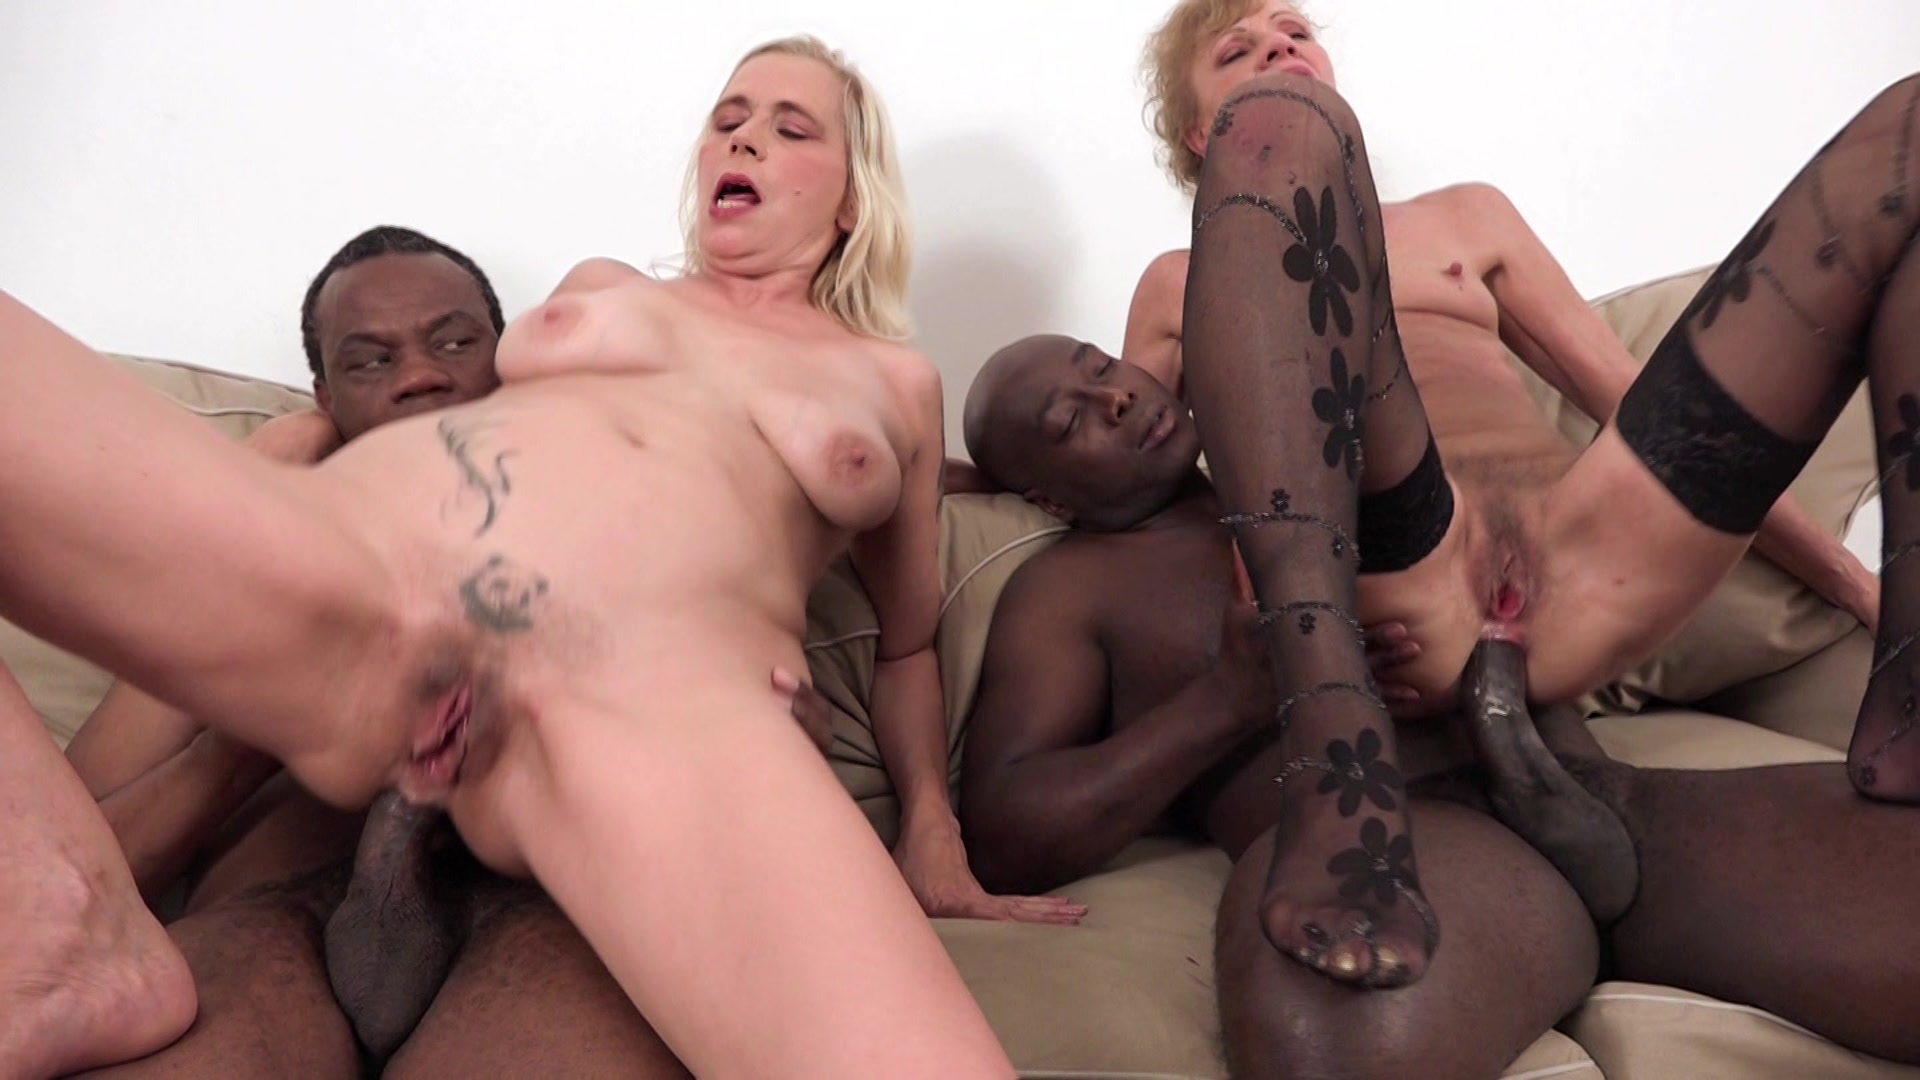 Mature Interracial Creampie Porn